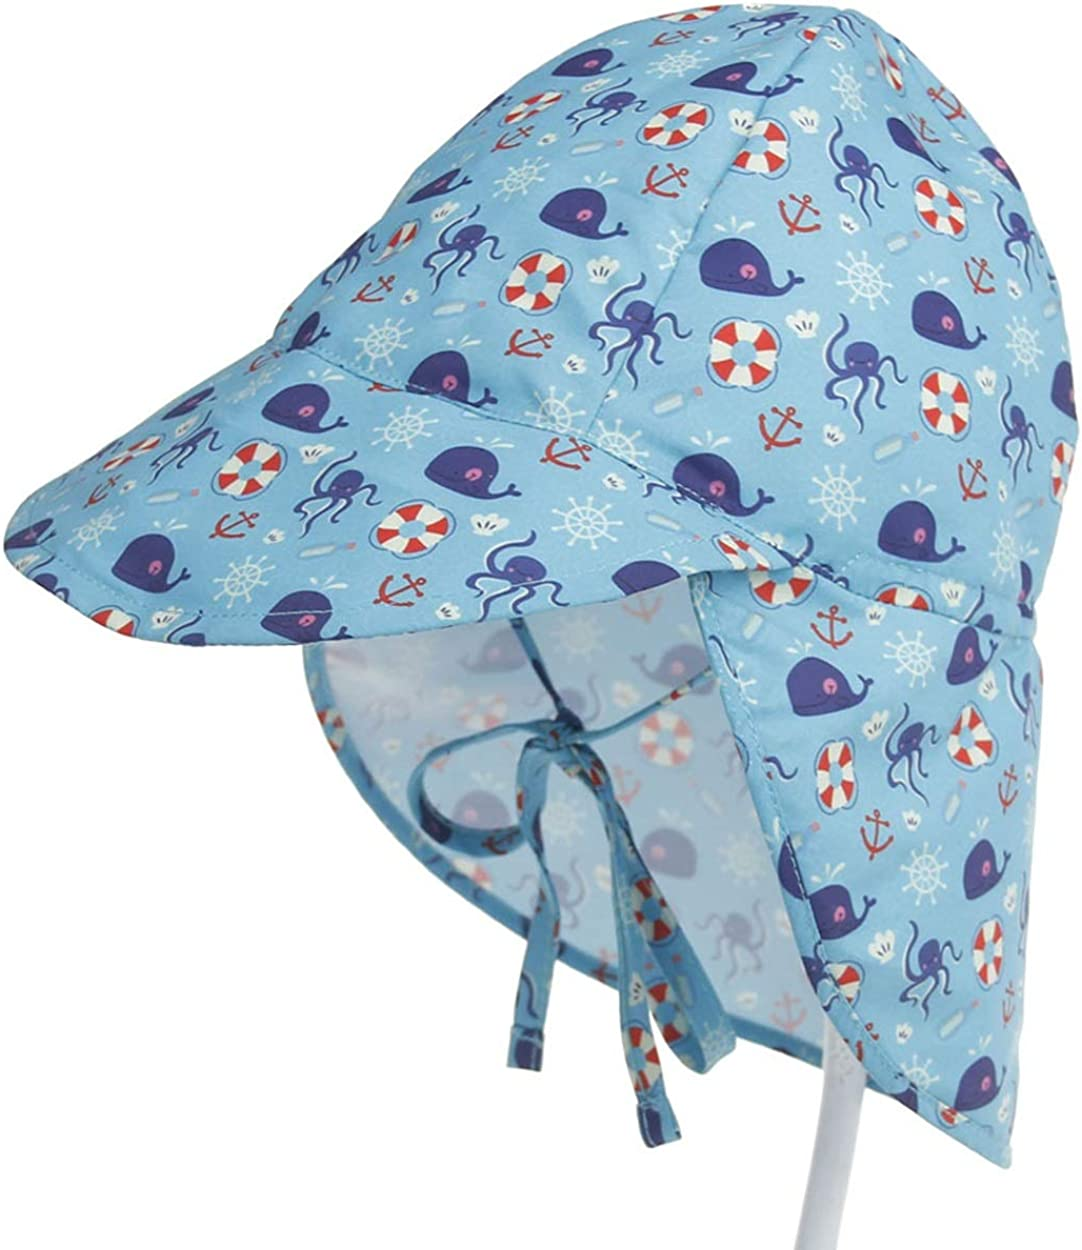 JOSSOIOJ Baby Hat UPF 50 UV Protection Sun Hat Adjustable Swimming Cap with Neck Flap